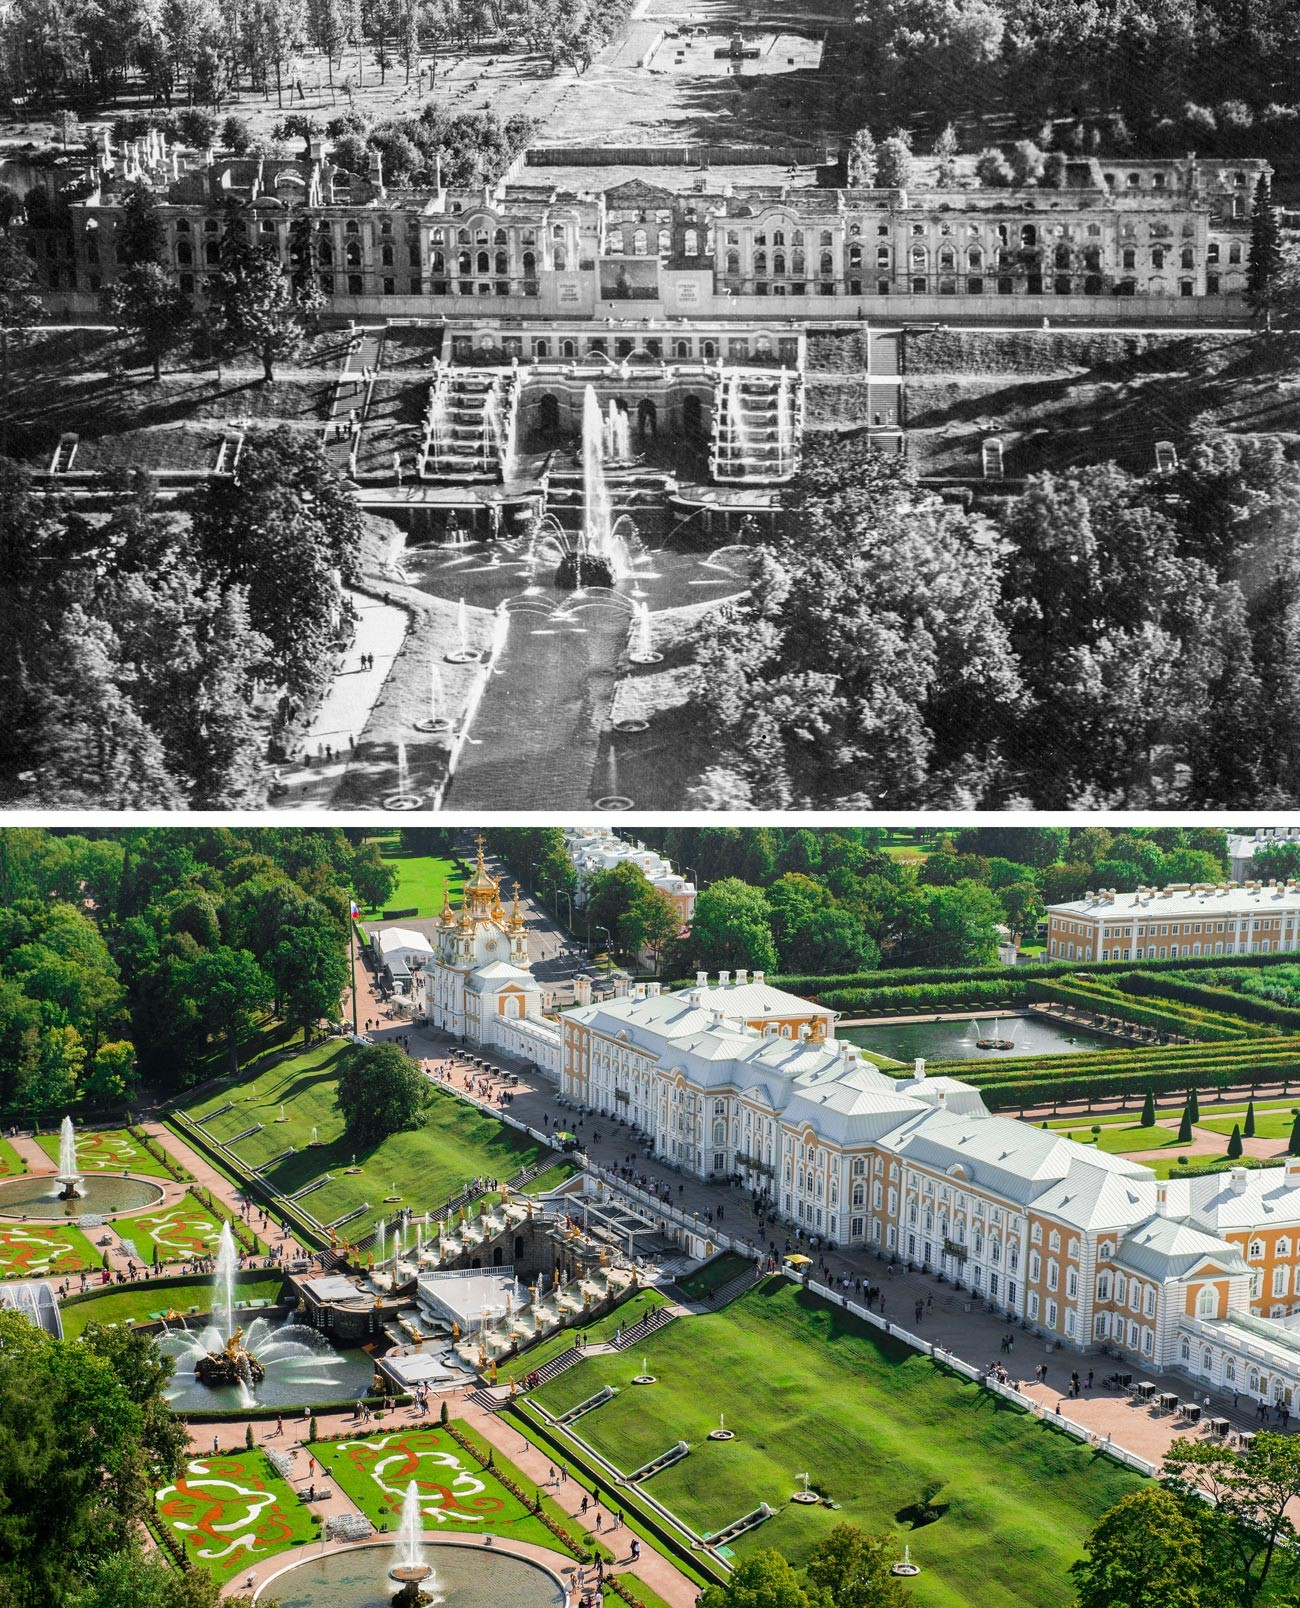 View of the Upper Garden, the Grand Palace and the Grand Cascade fountain in 1944 and now